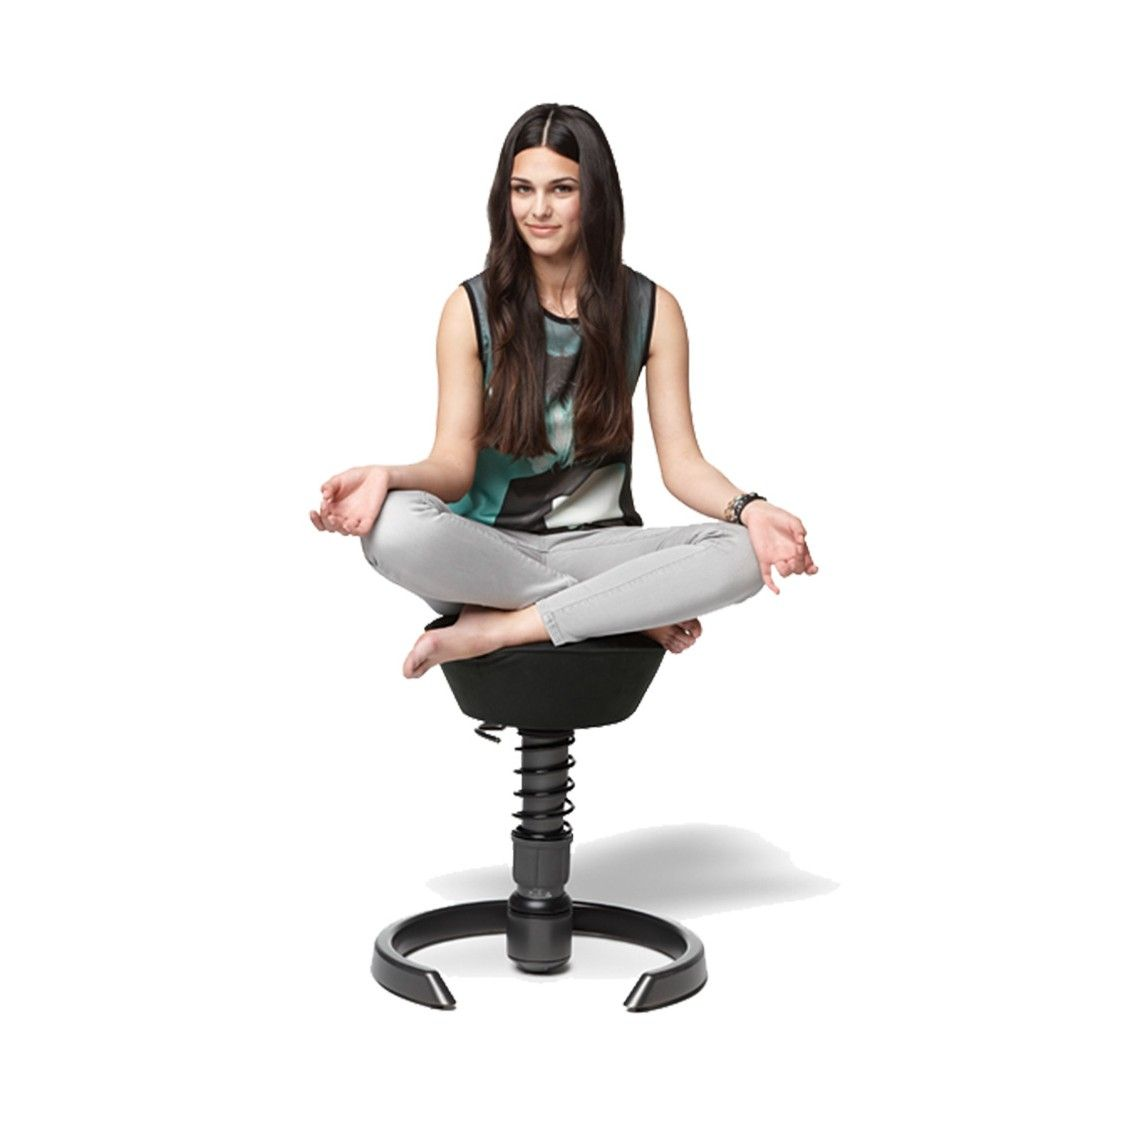 Bürostuhl Swopper Work Swopper Air By Aeris In 2019 Sit Chair Air Chair